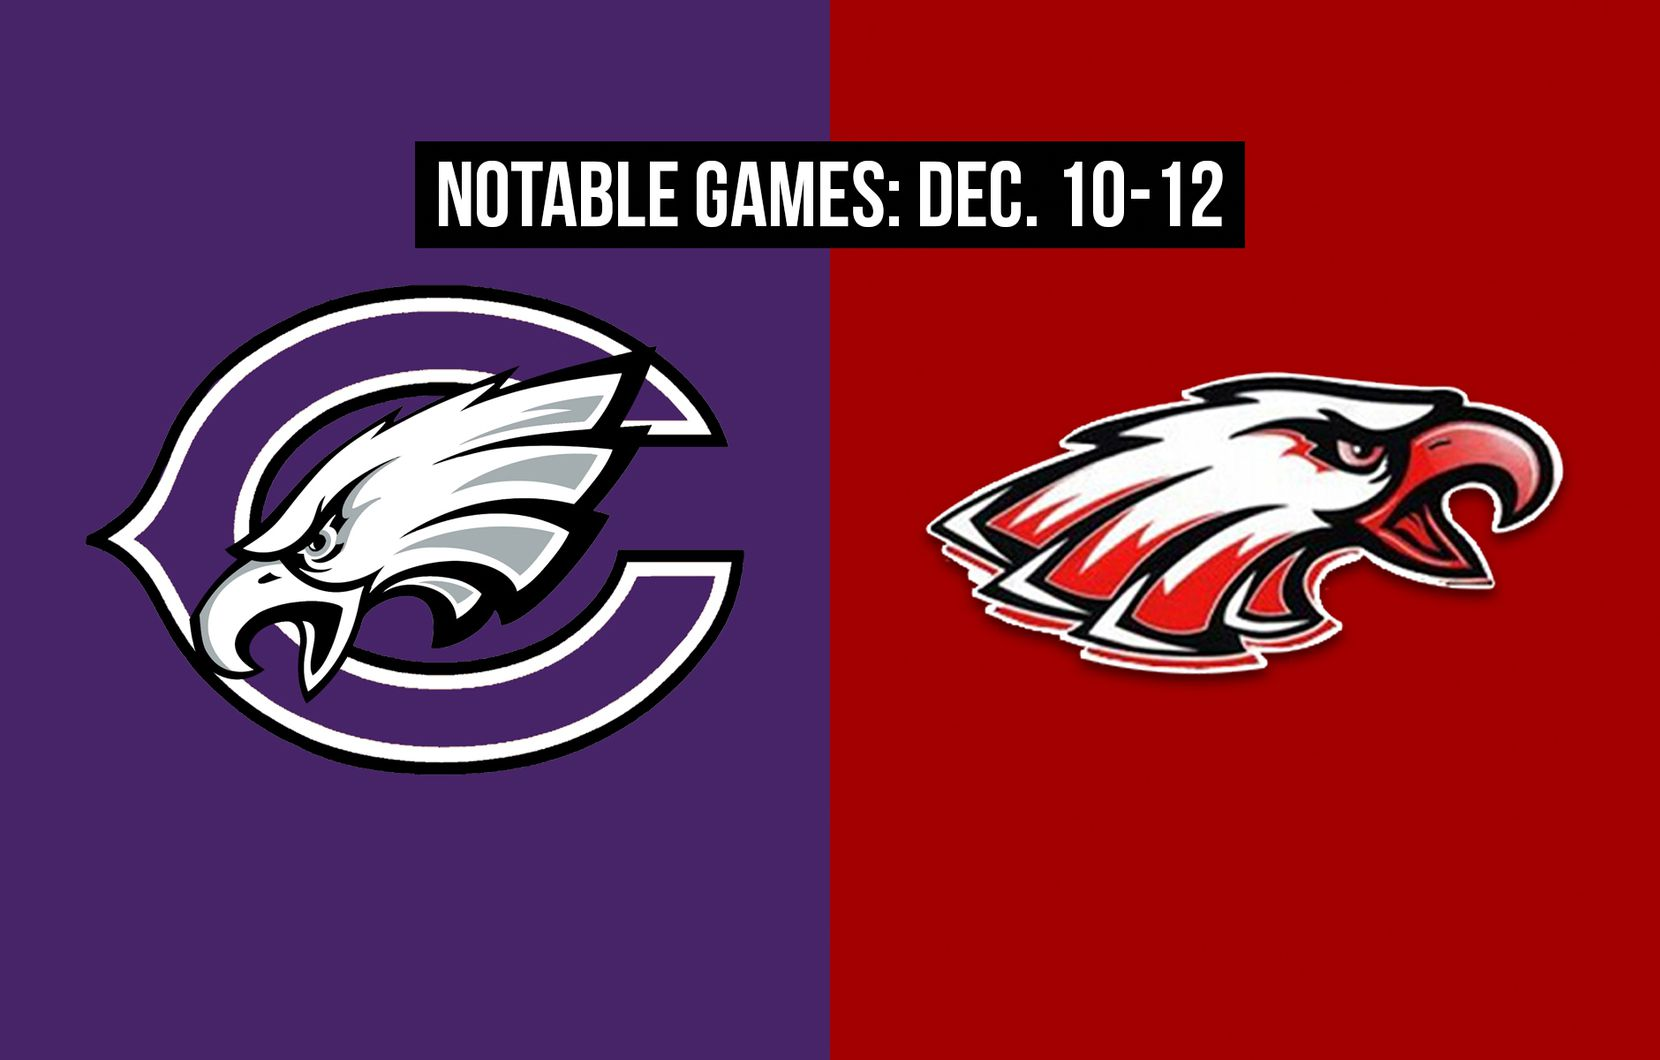 Notable games for the week of Dec. 10-12 of the 2020 season: Canyon vs. Argyle.